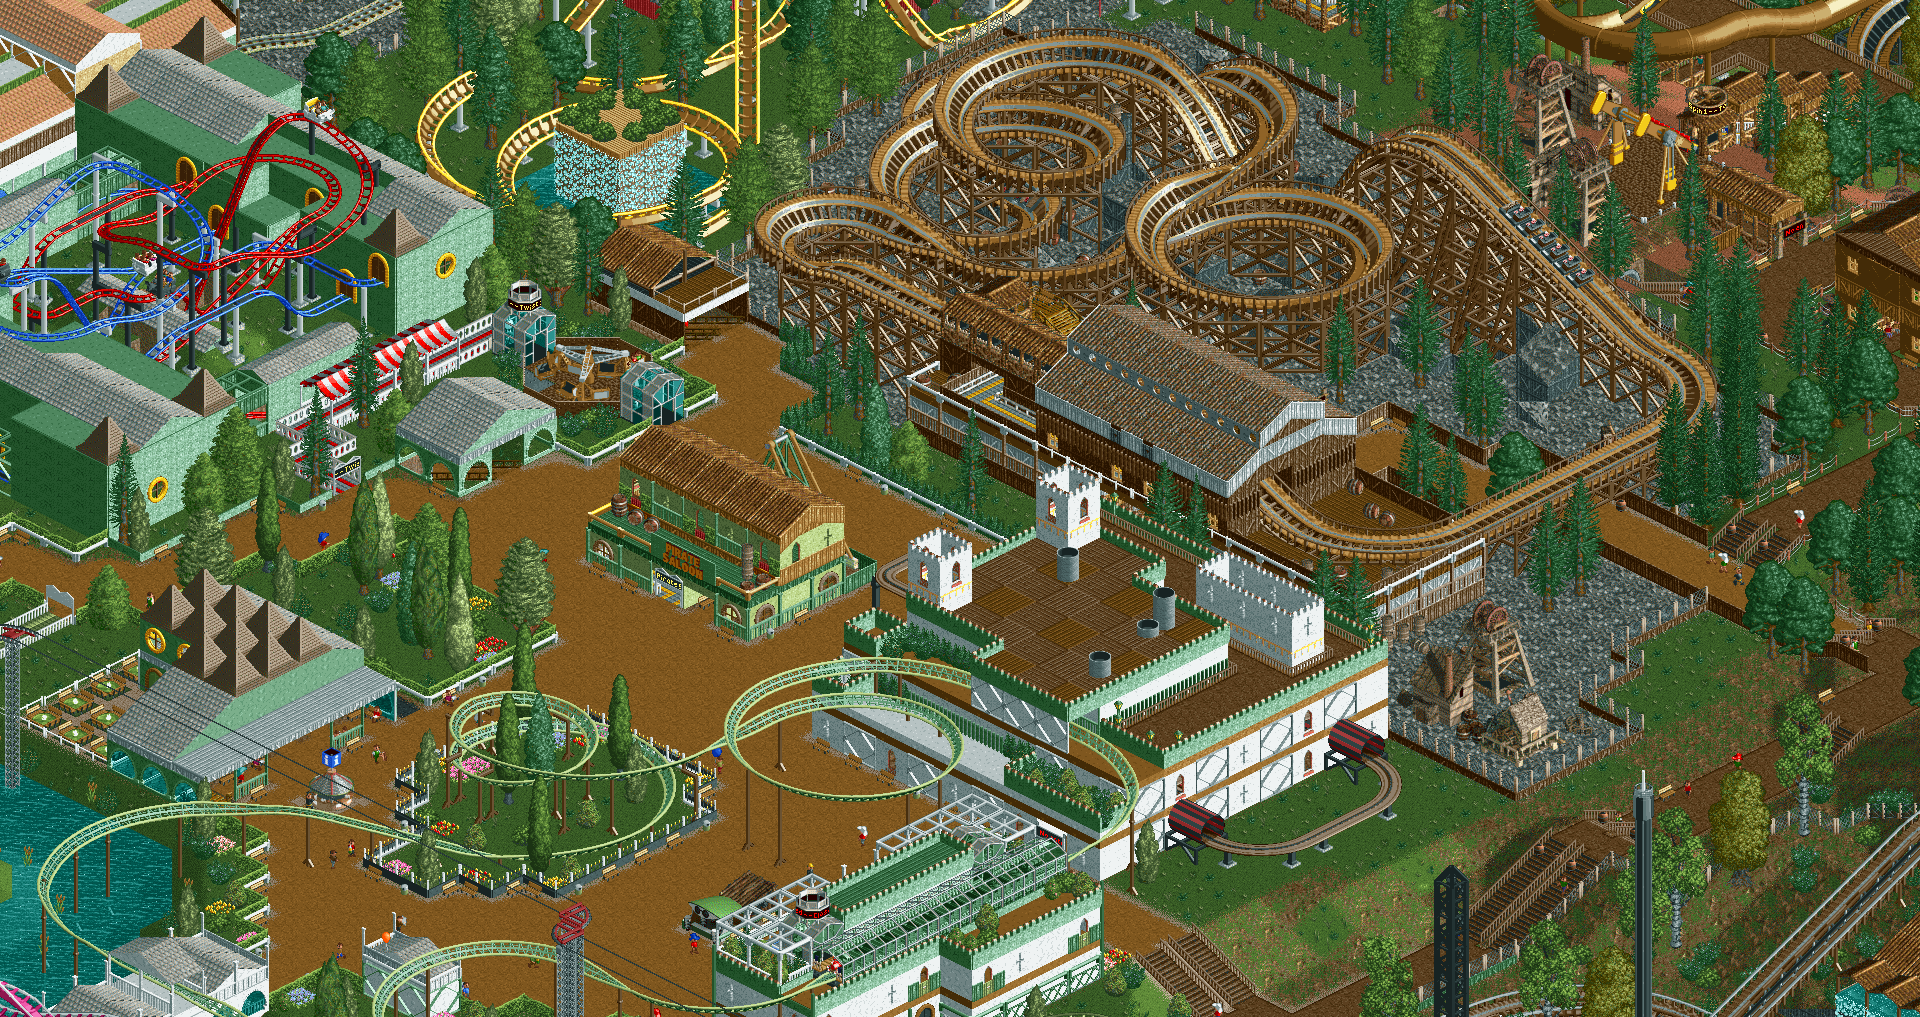 RollerCoaster Tycoon 2 Game Review